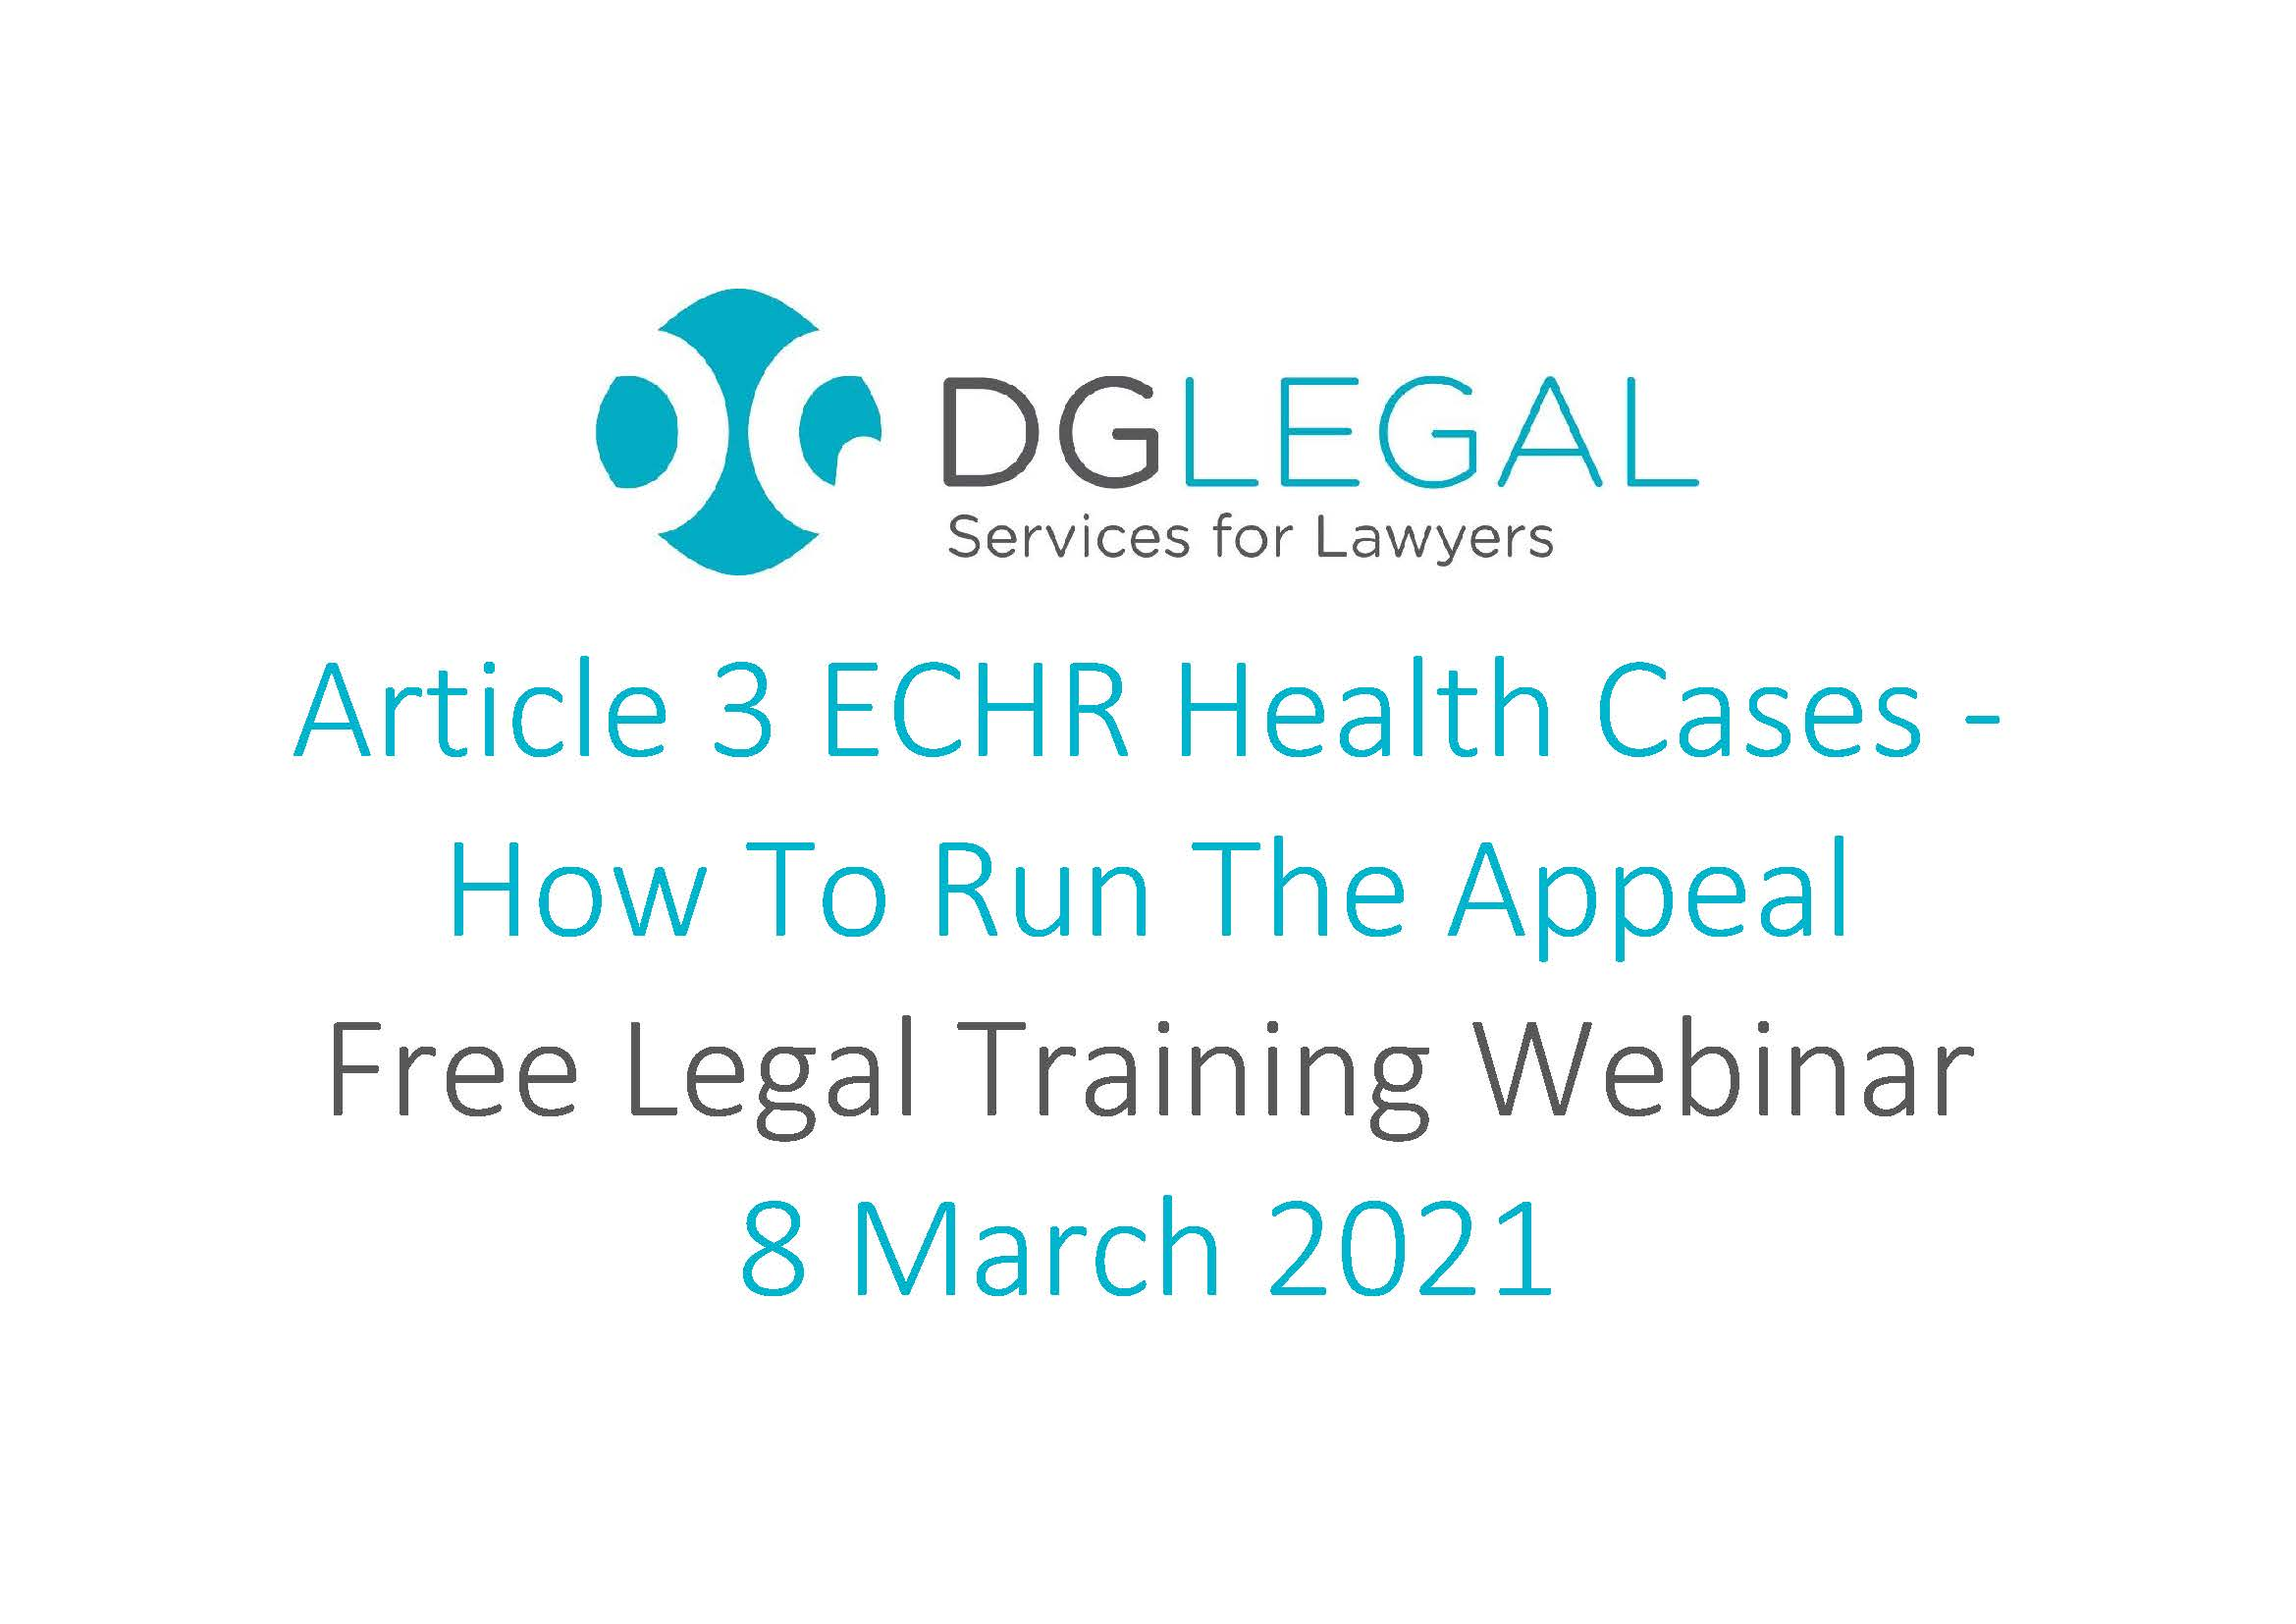 Article 3 ECHR Health Cases - How To Run The Appeal